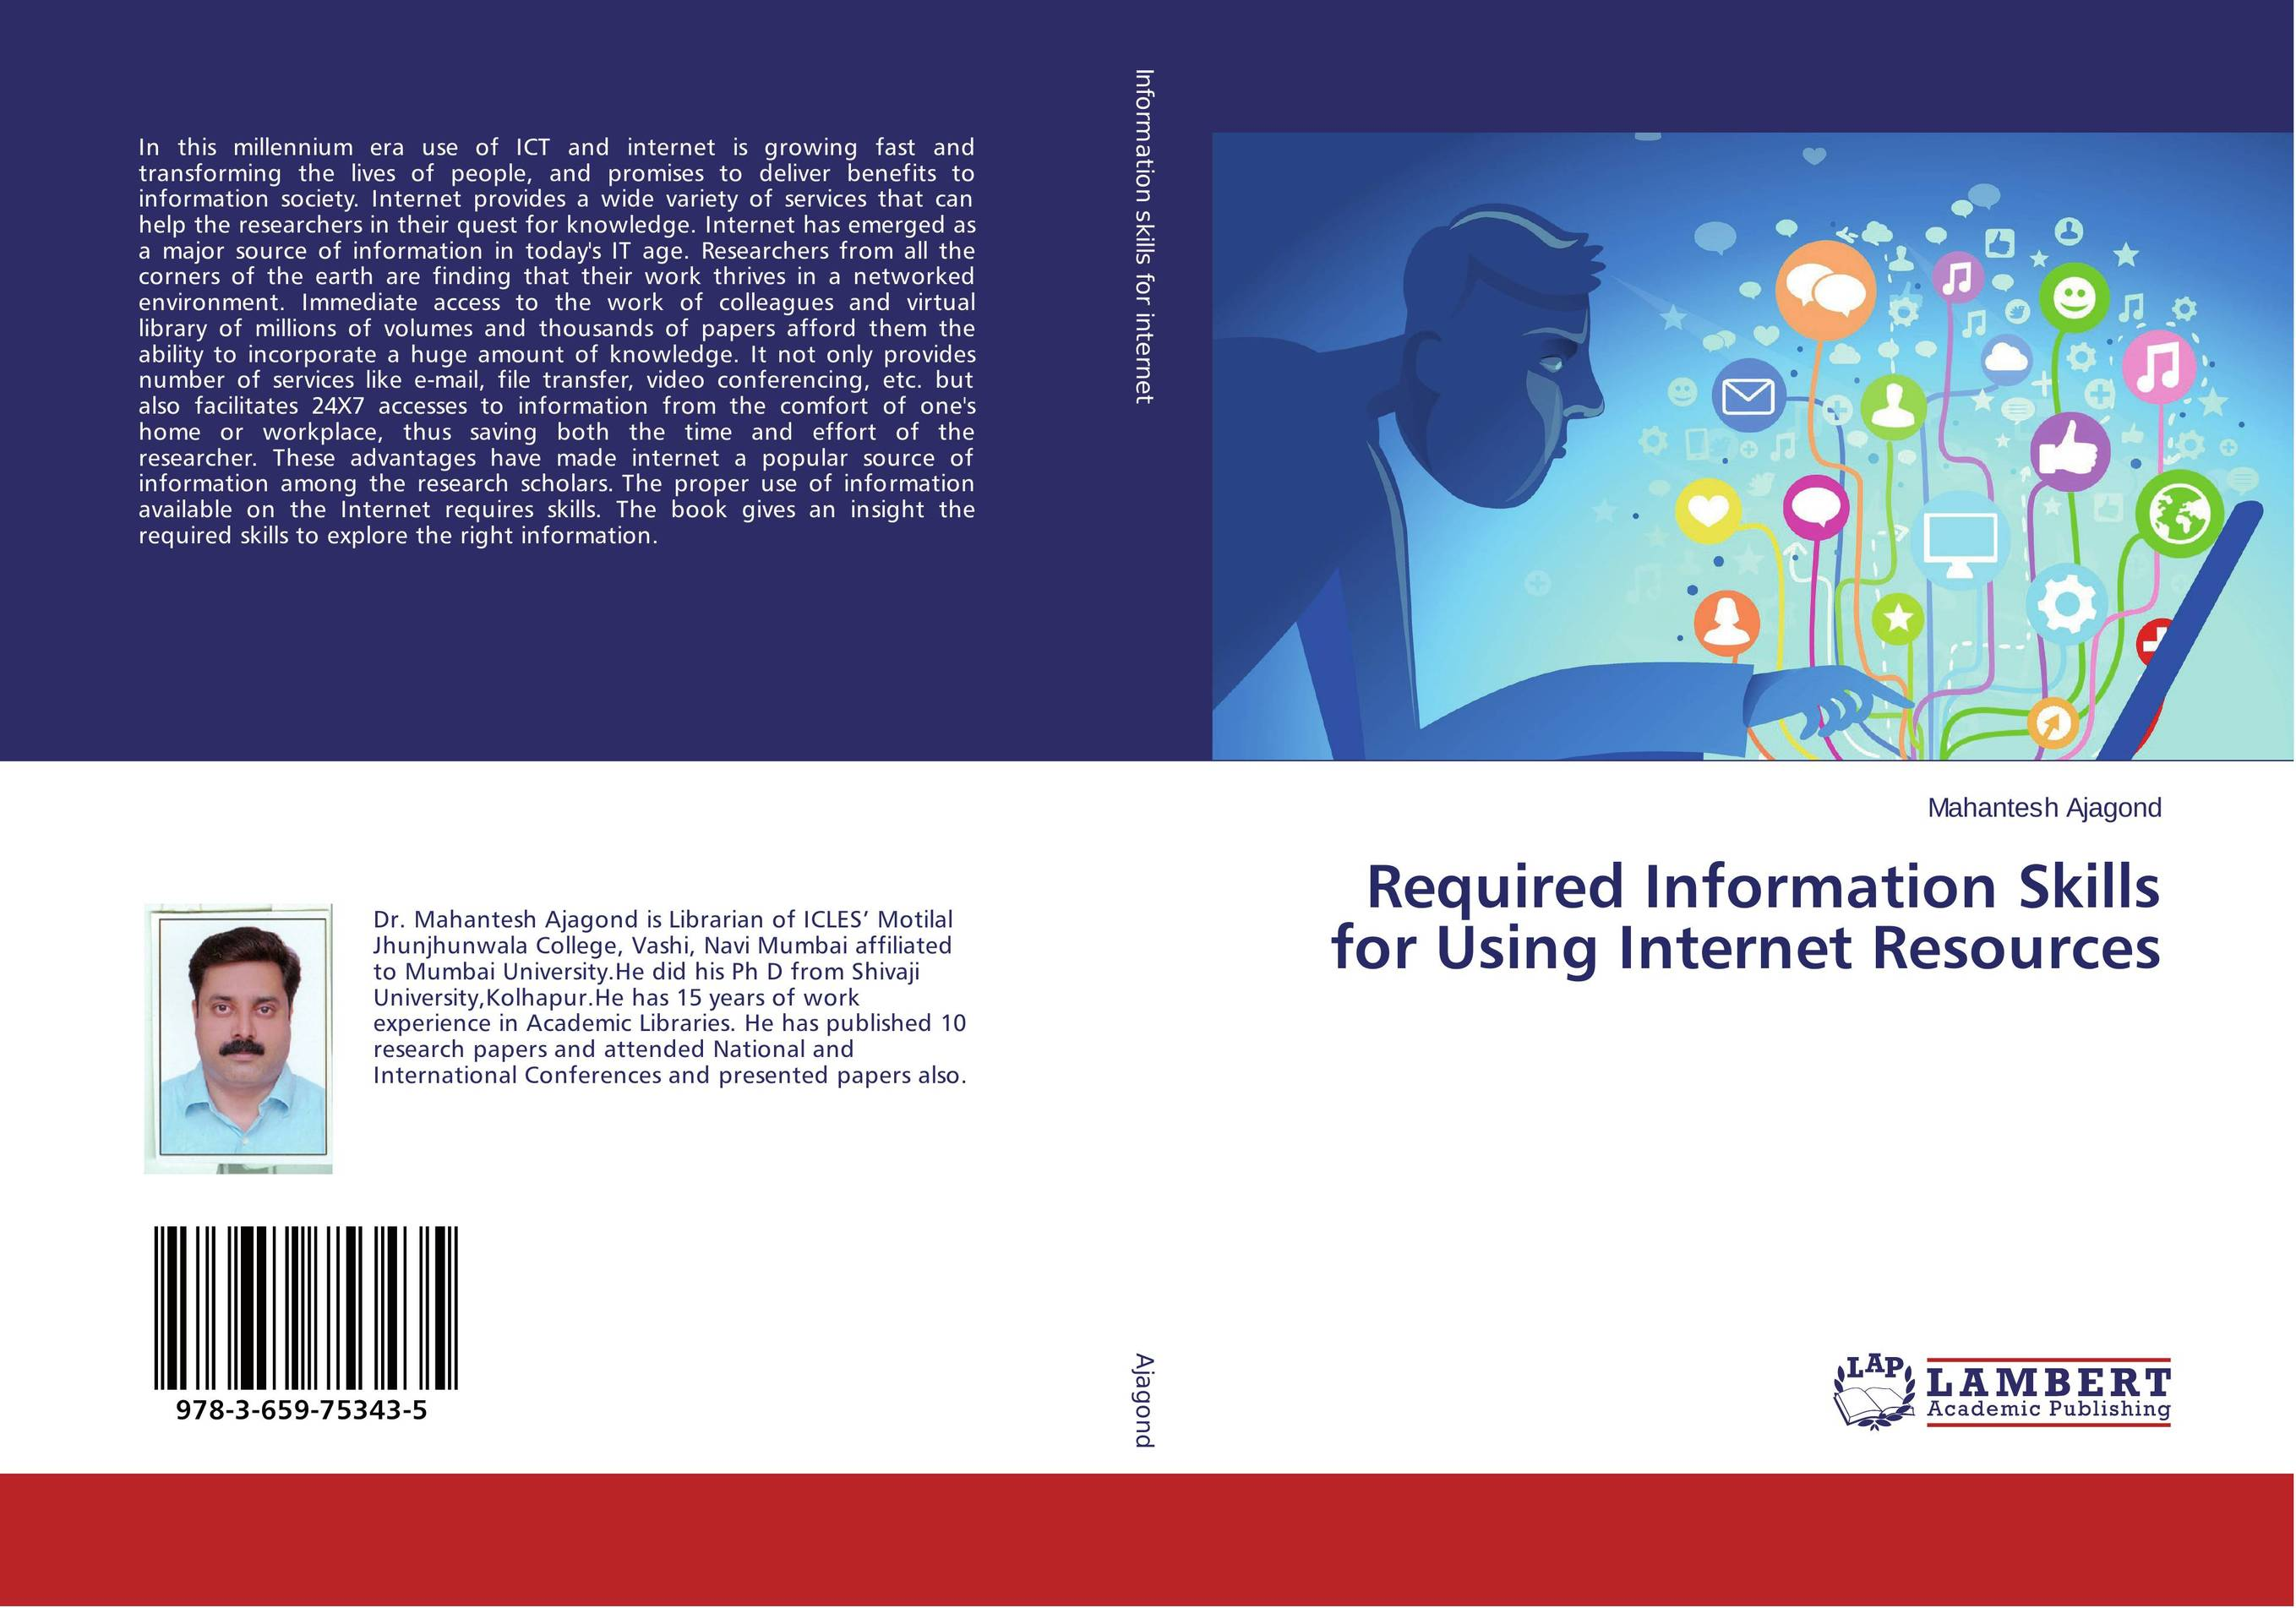 Required Information Skills for Using Internet Resources